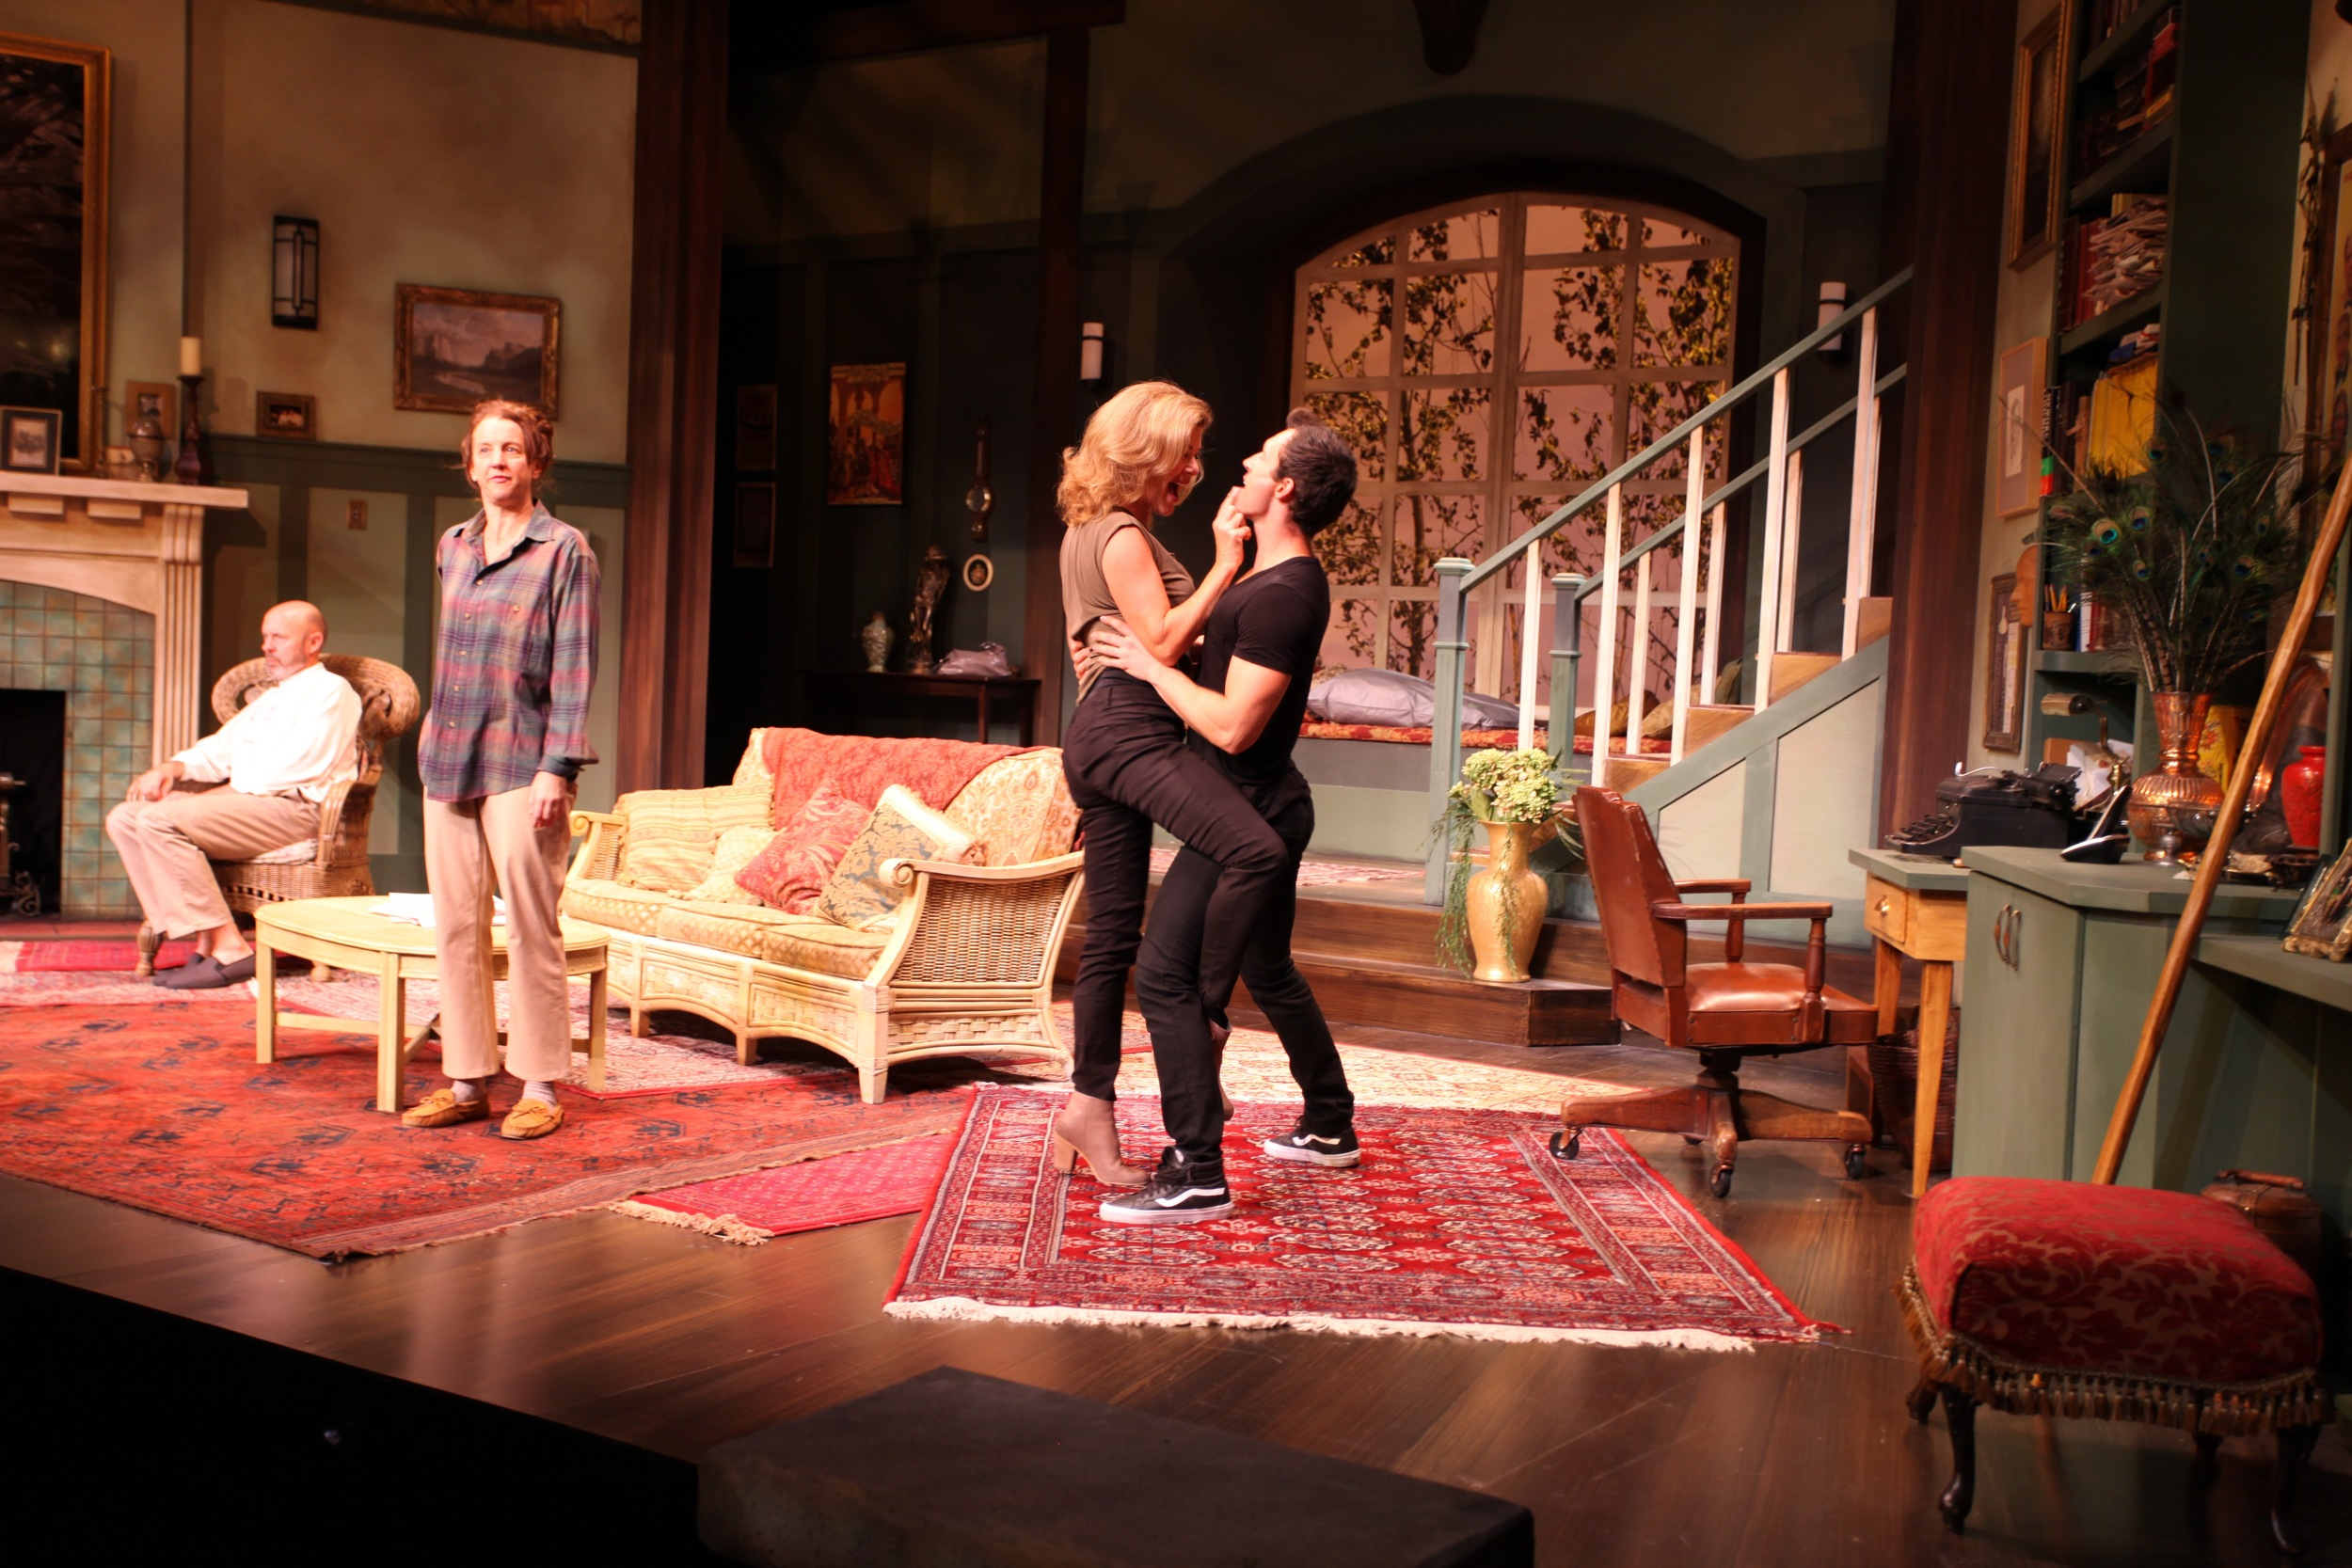 From left to right: Christopher Hunt (Vanya), Lois Anderson (Sonia), Sonja Smits (Masha) and Spike (Stafford Perry). Photo credit: Alberta Theatre Projects